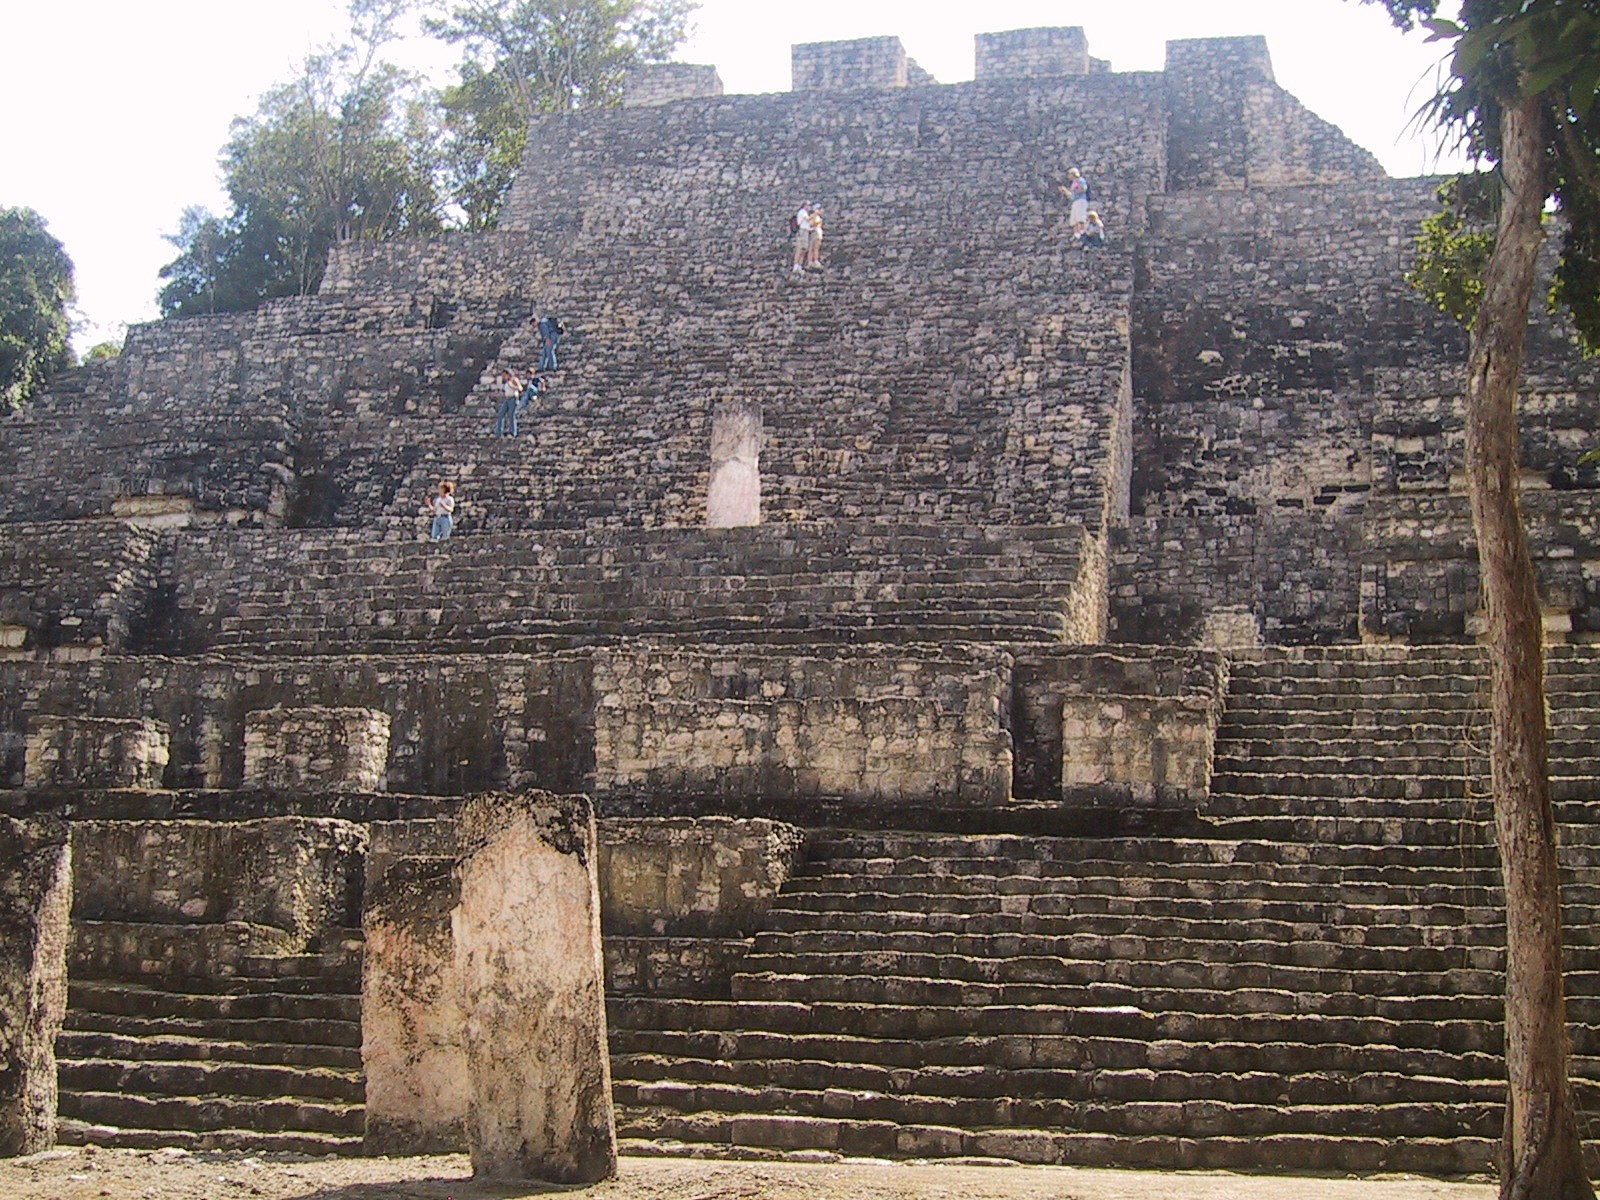 """At 150 feet high, """"Structure 2,"""" is the largest building at Calakmul, in the Petén Basin of the Yucatan peninsula. The city was home to an estimated 50,000 people prior to being abandoned early in the 10th century. - PHOTO BY BARRY EVANS"""